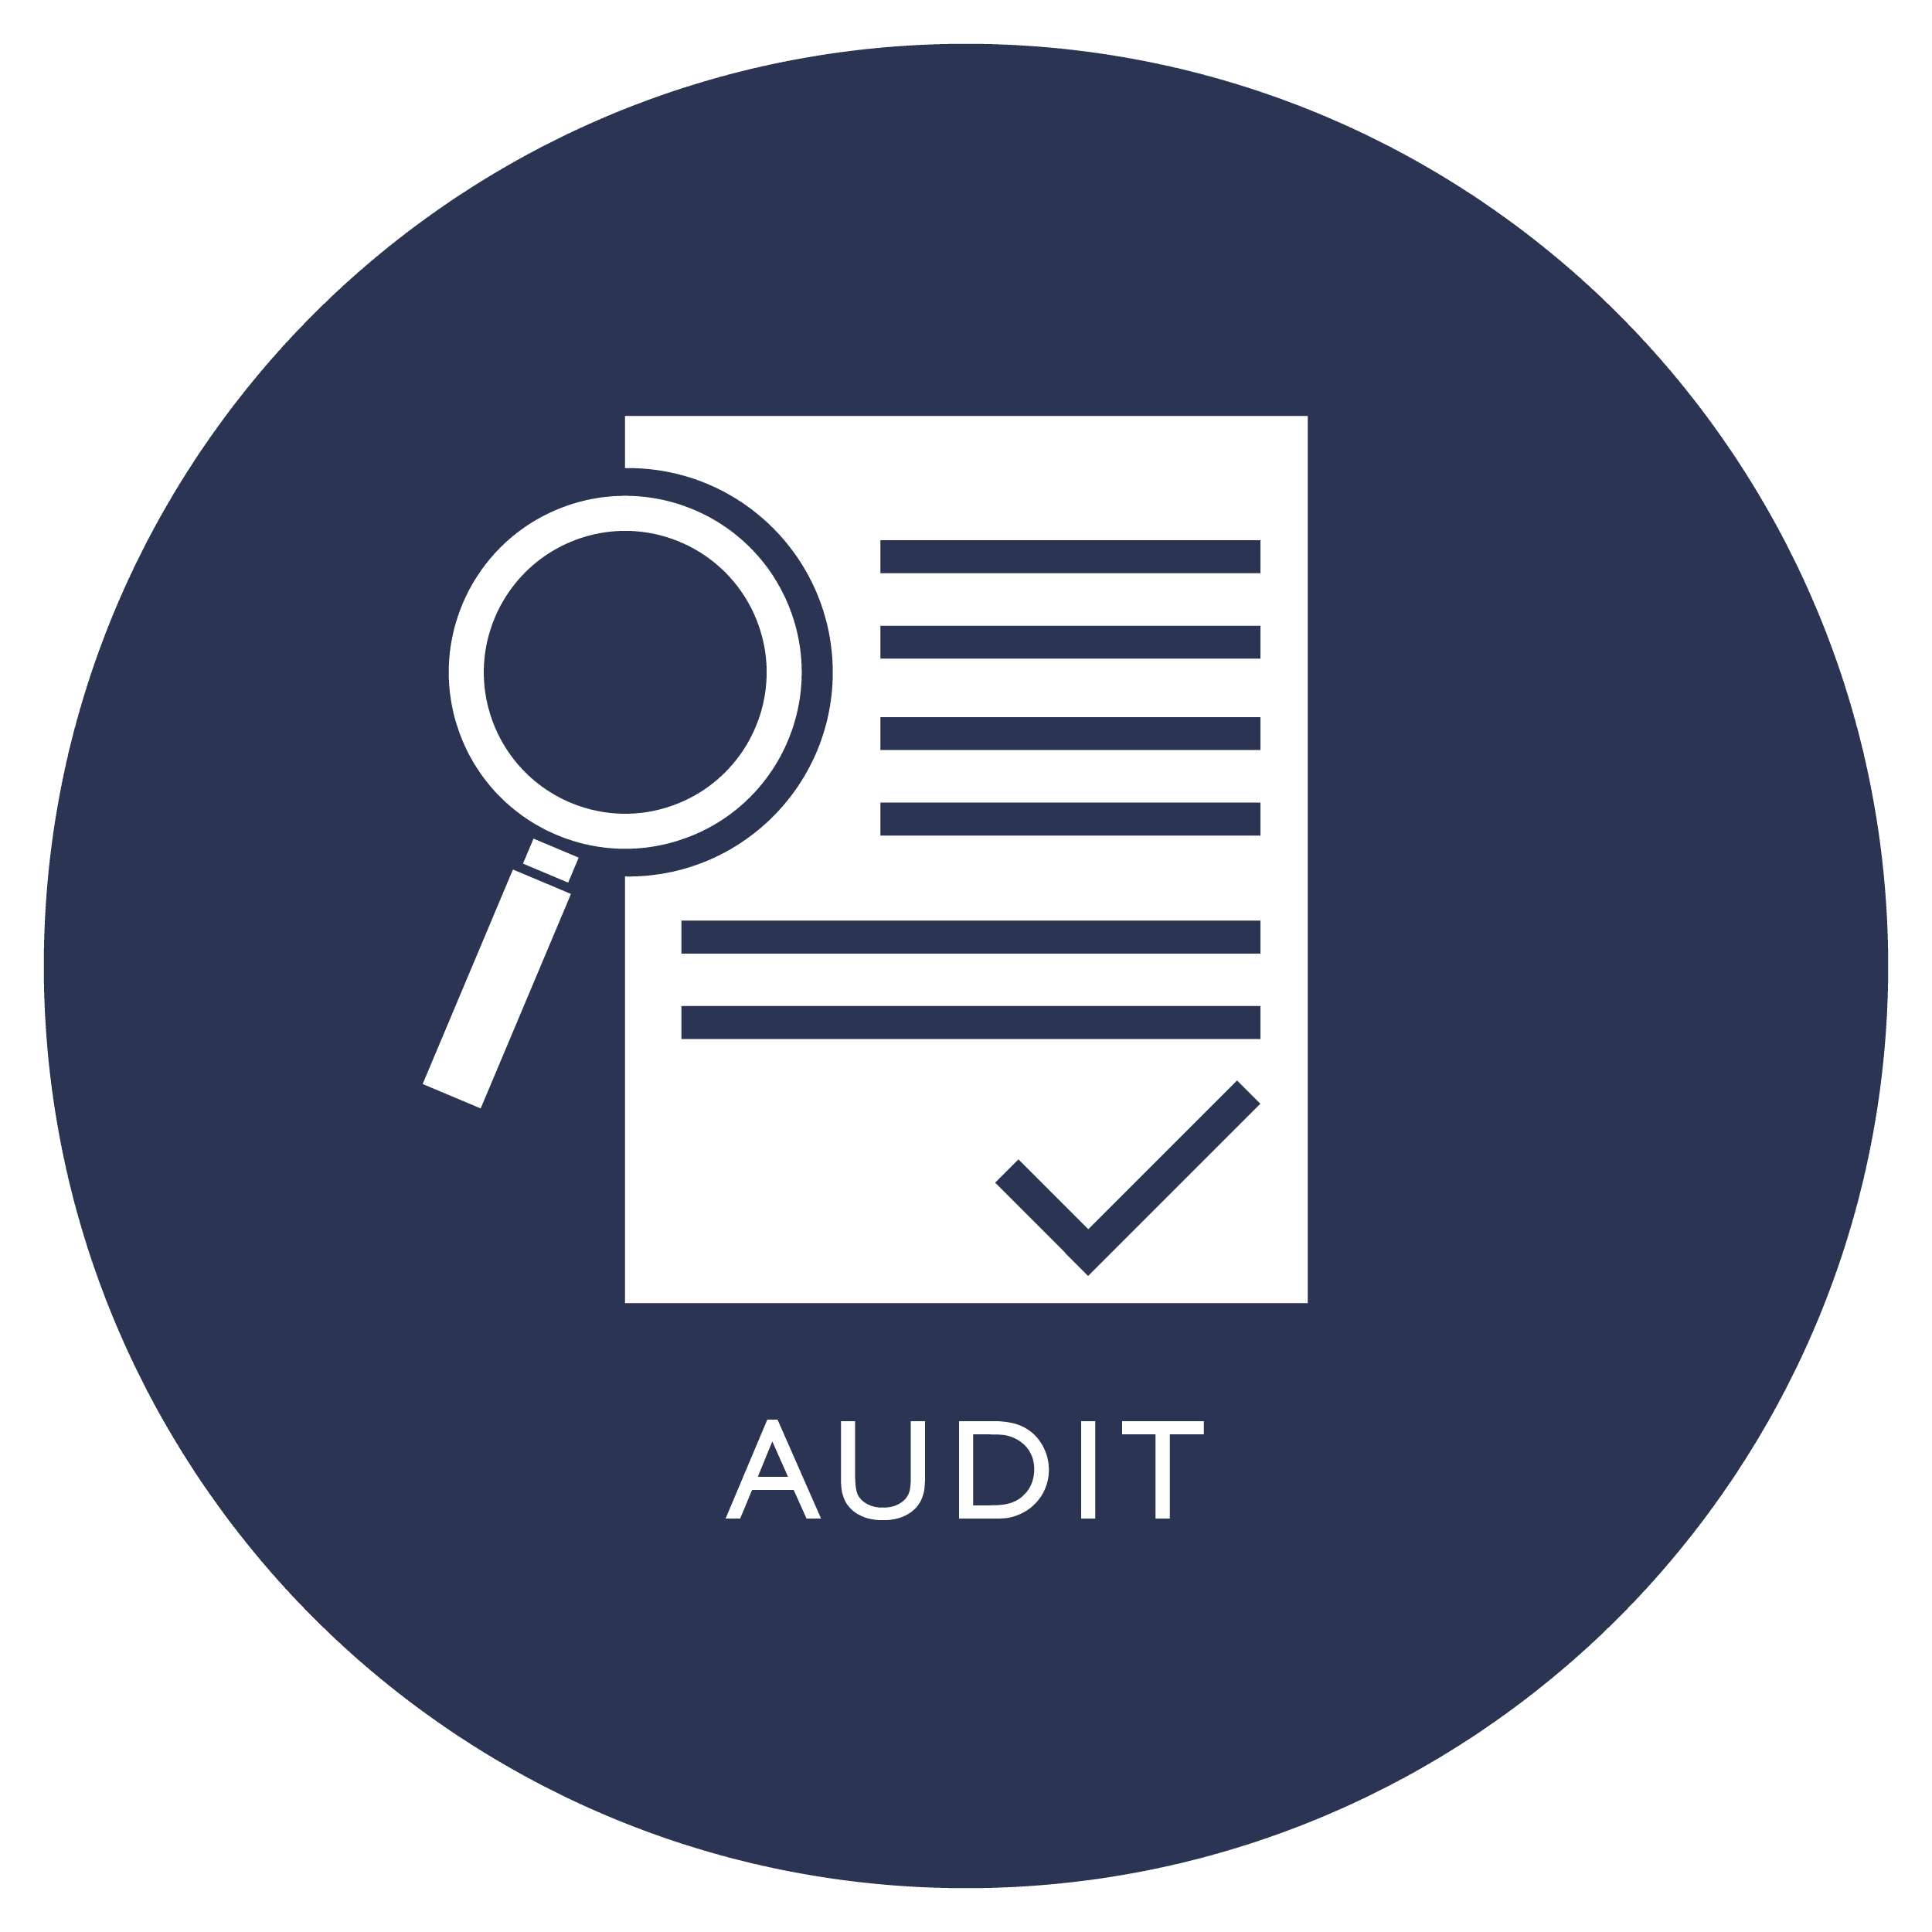 Audit-01 Opens in new window